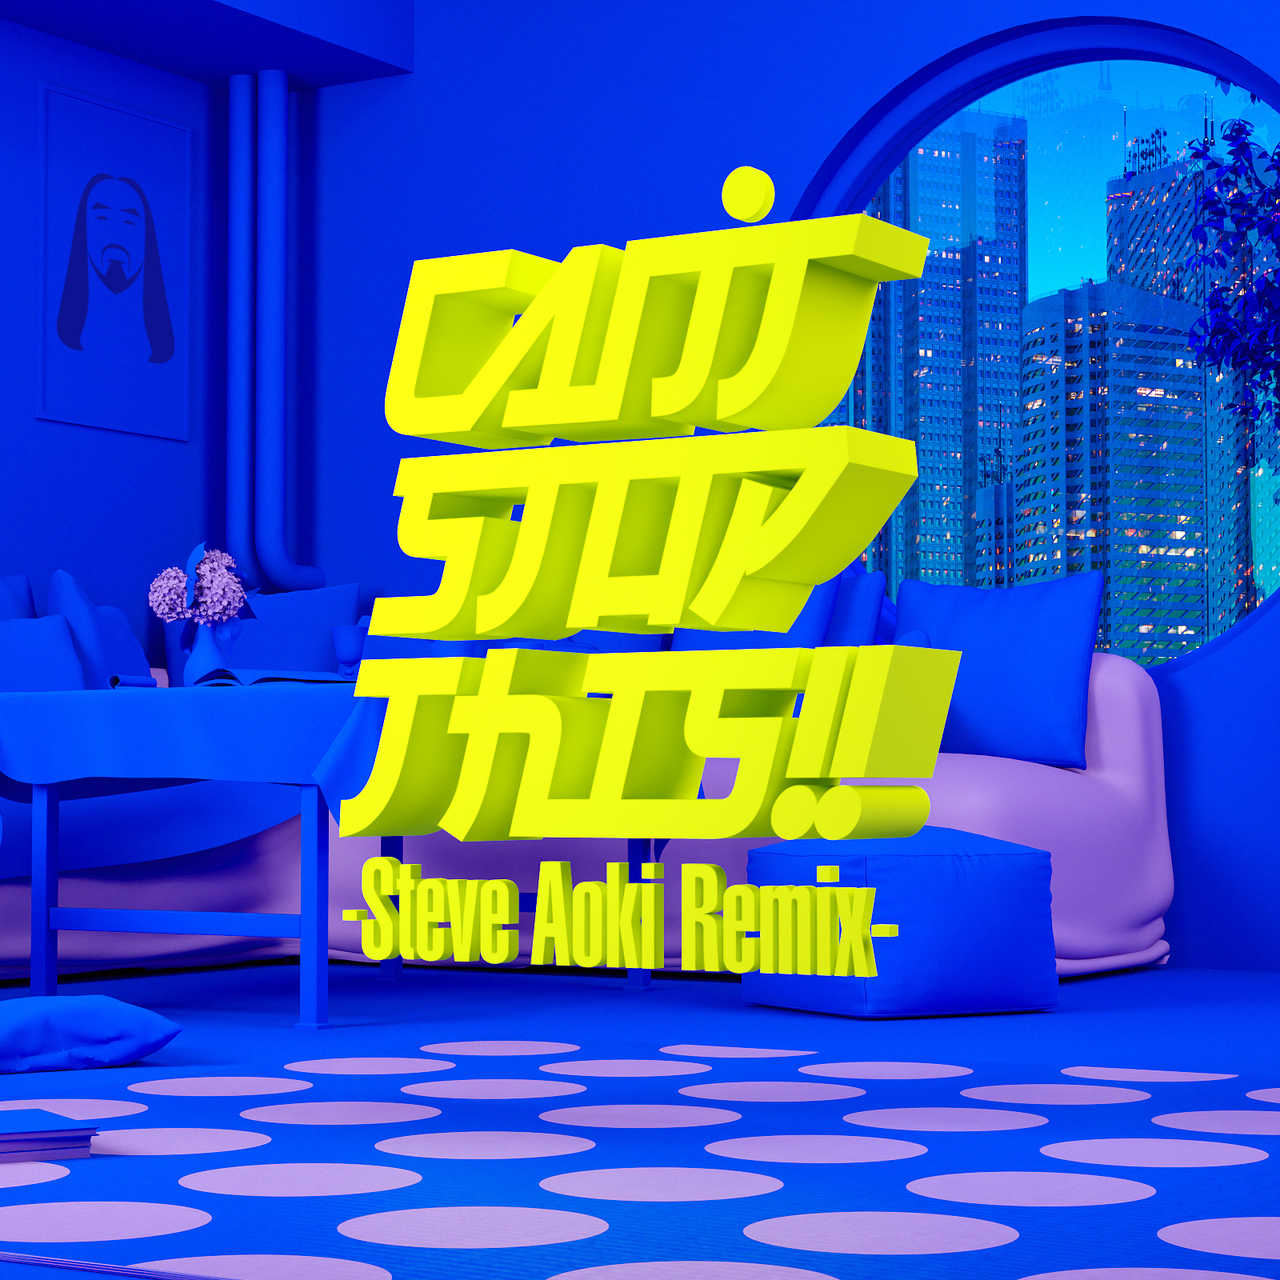 配信楽曲「CAN'T STOP THIS!! -Steve Aoki Remix-」